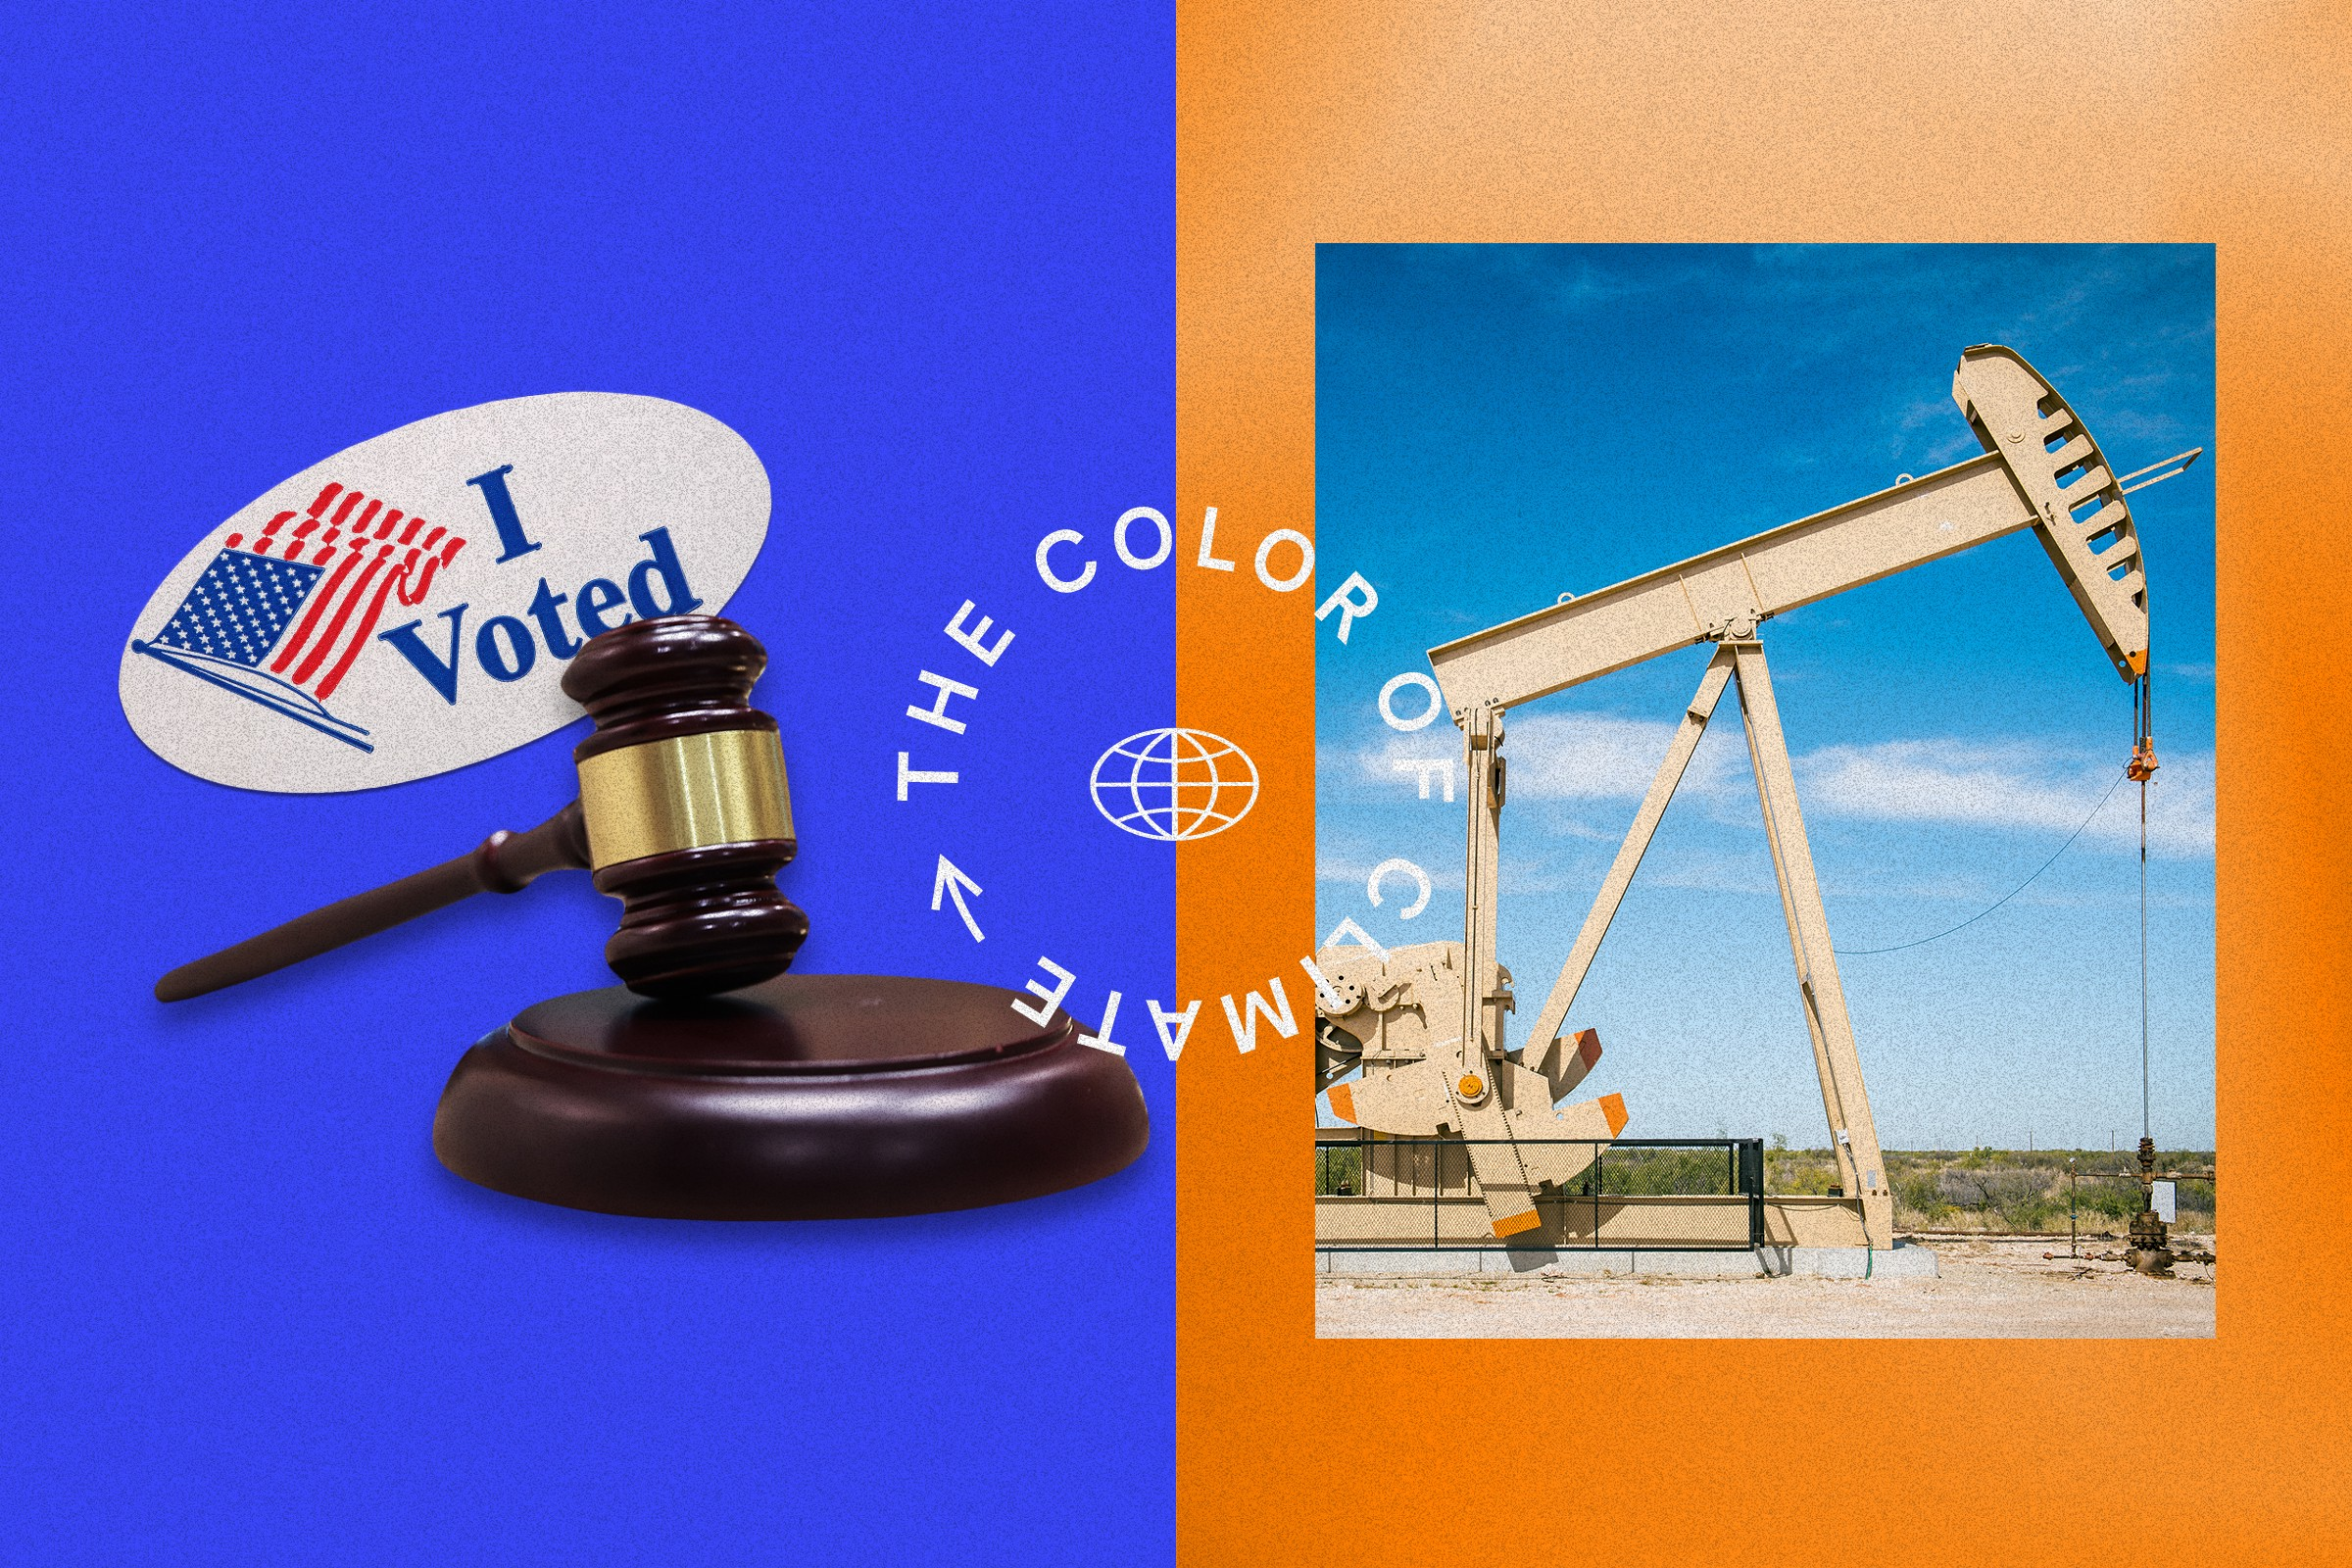 """The text """"The Color of Climate"""" is illustrated in a circle pattern  around a globe icon. Behind the text there are two images side-by-side—on the left is a gavel and an """"I Voted"""" sticker, and on the right is an oil drilling machine."""